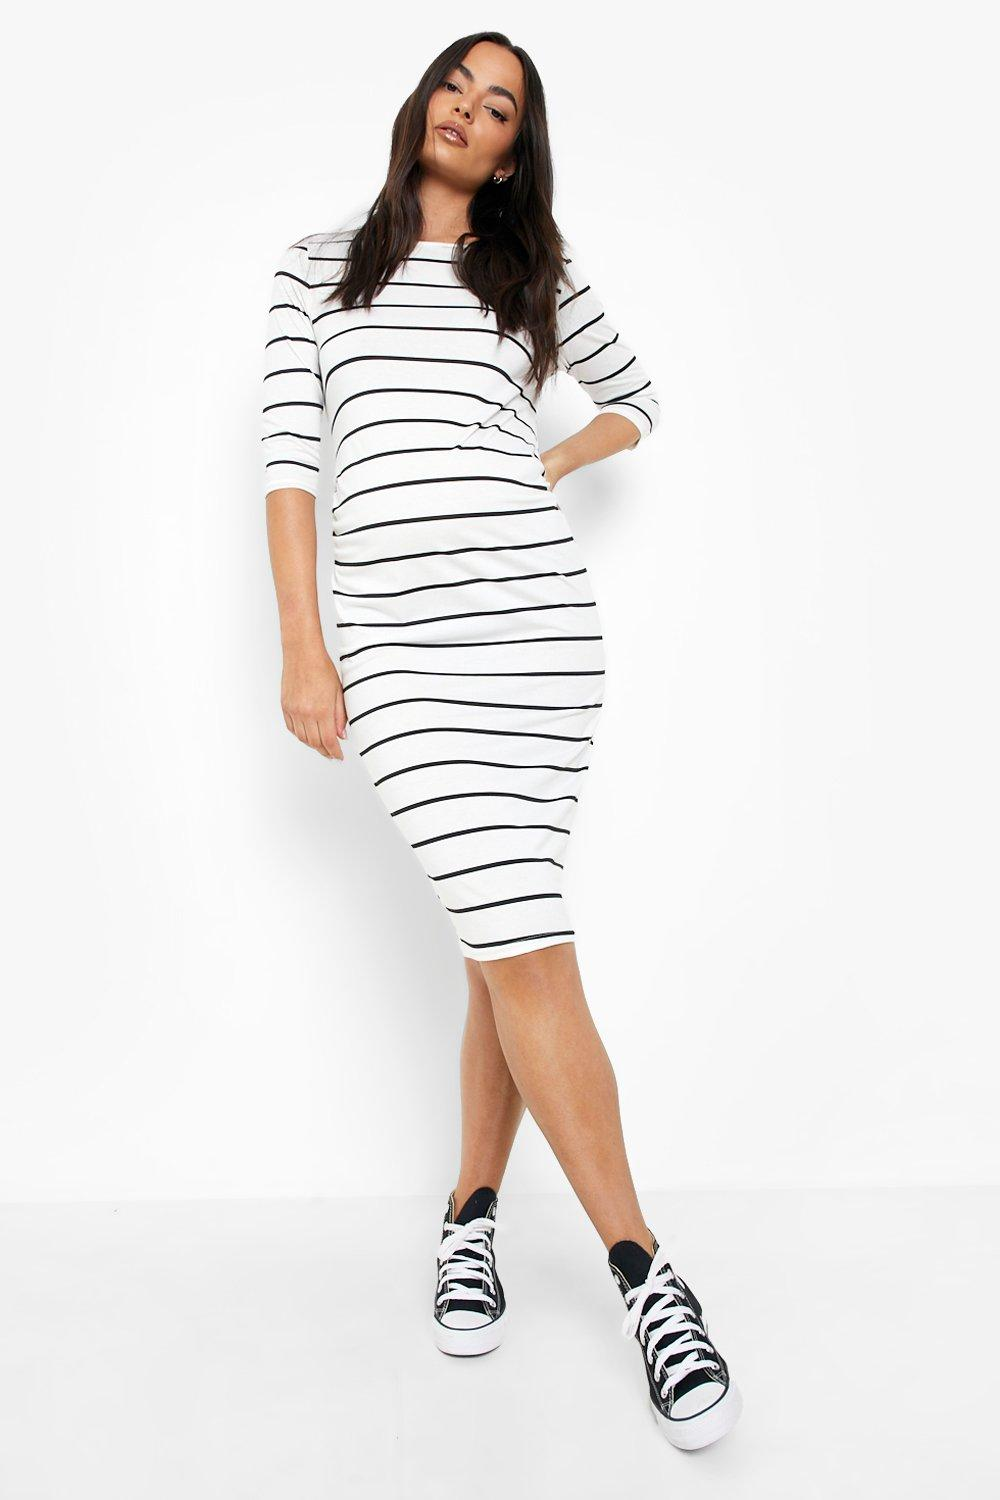 595df0d67d38c Womens Black Maternity Striped 3/4 Sleeved Midi Dress. Hover to zoom